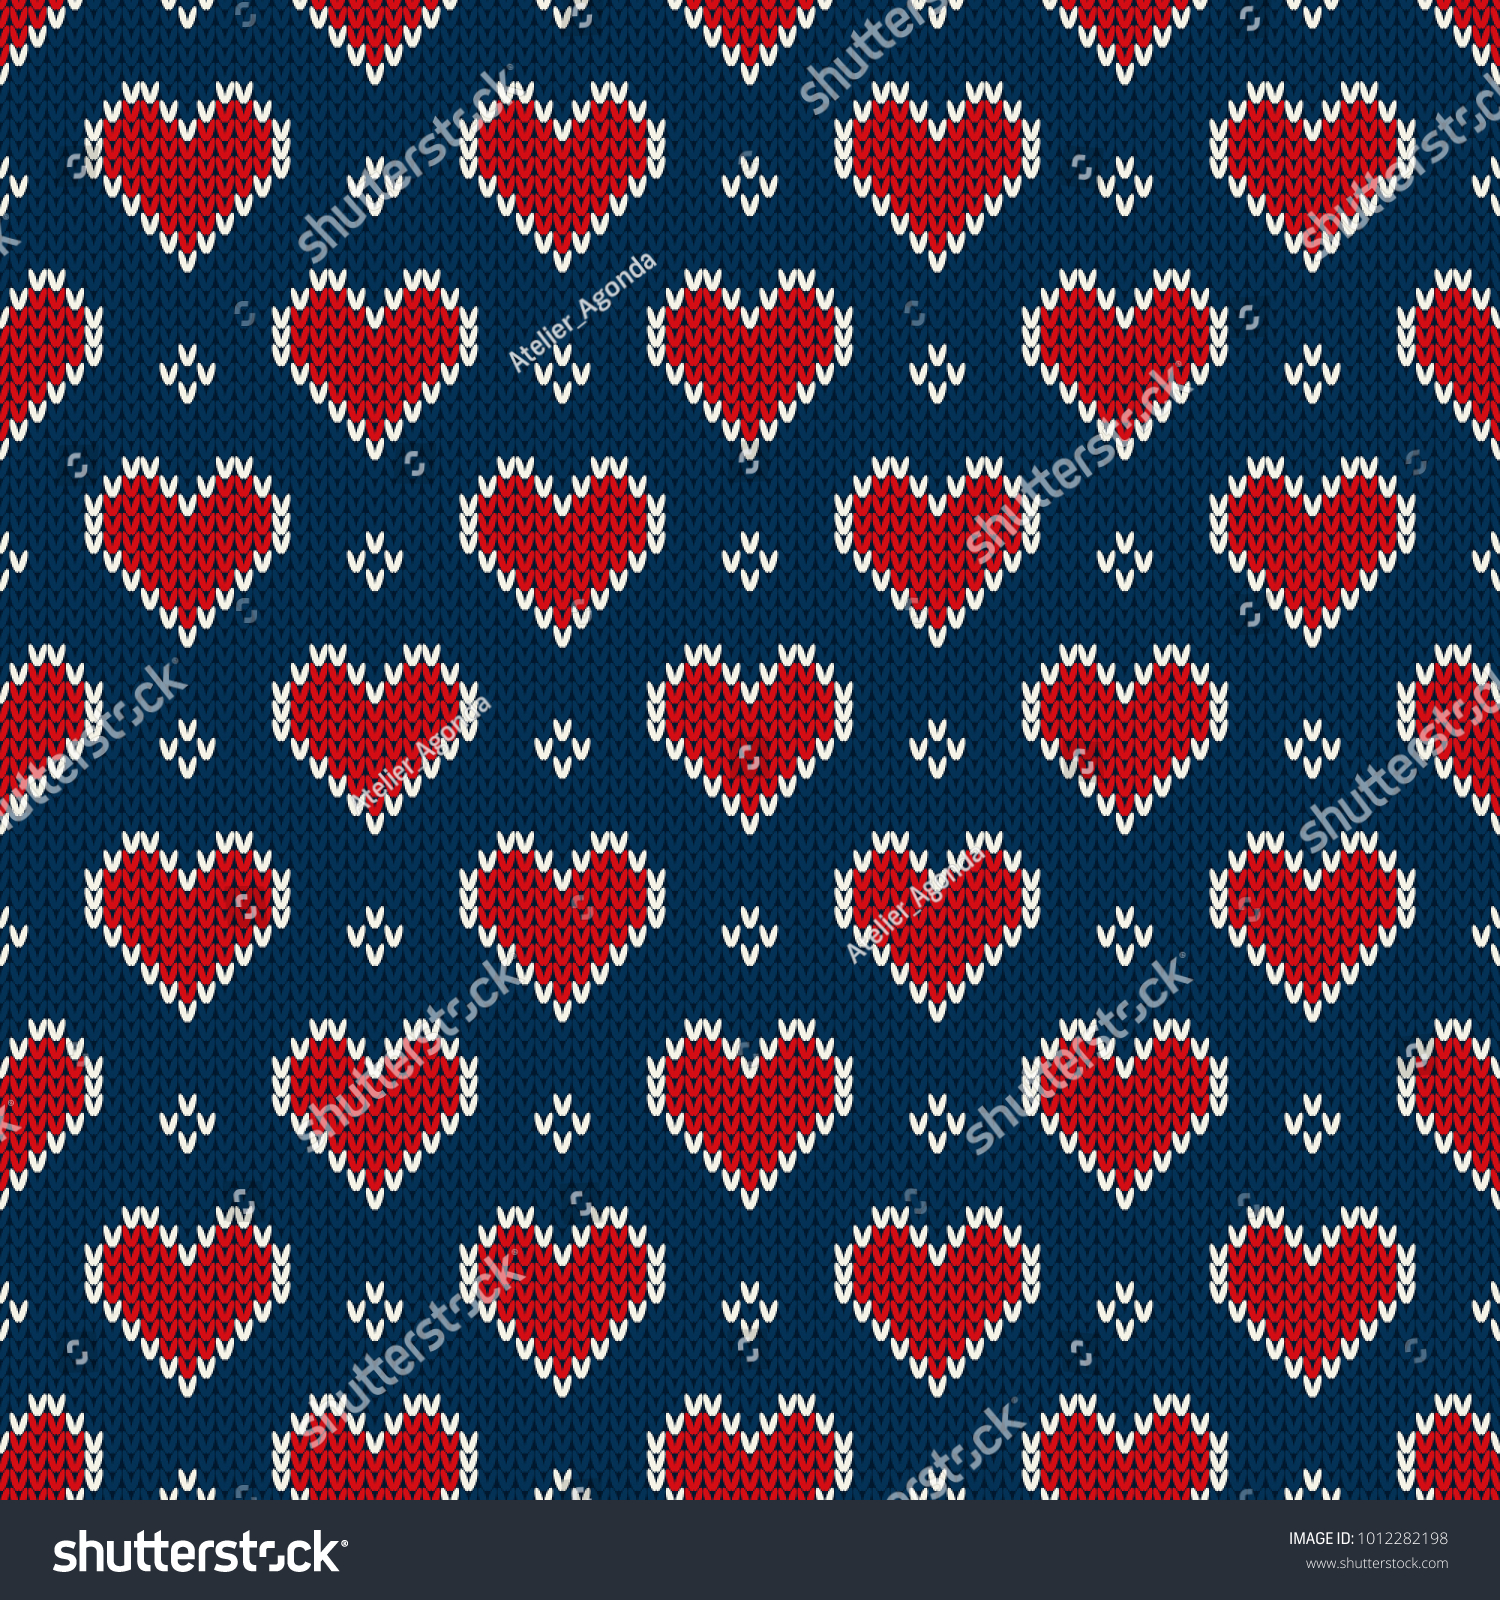 Valentines Day Holiday Seamless Knit Pattern Stock Vector 1012282198 ...